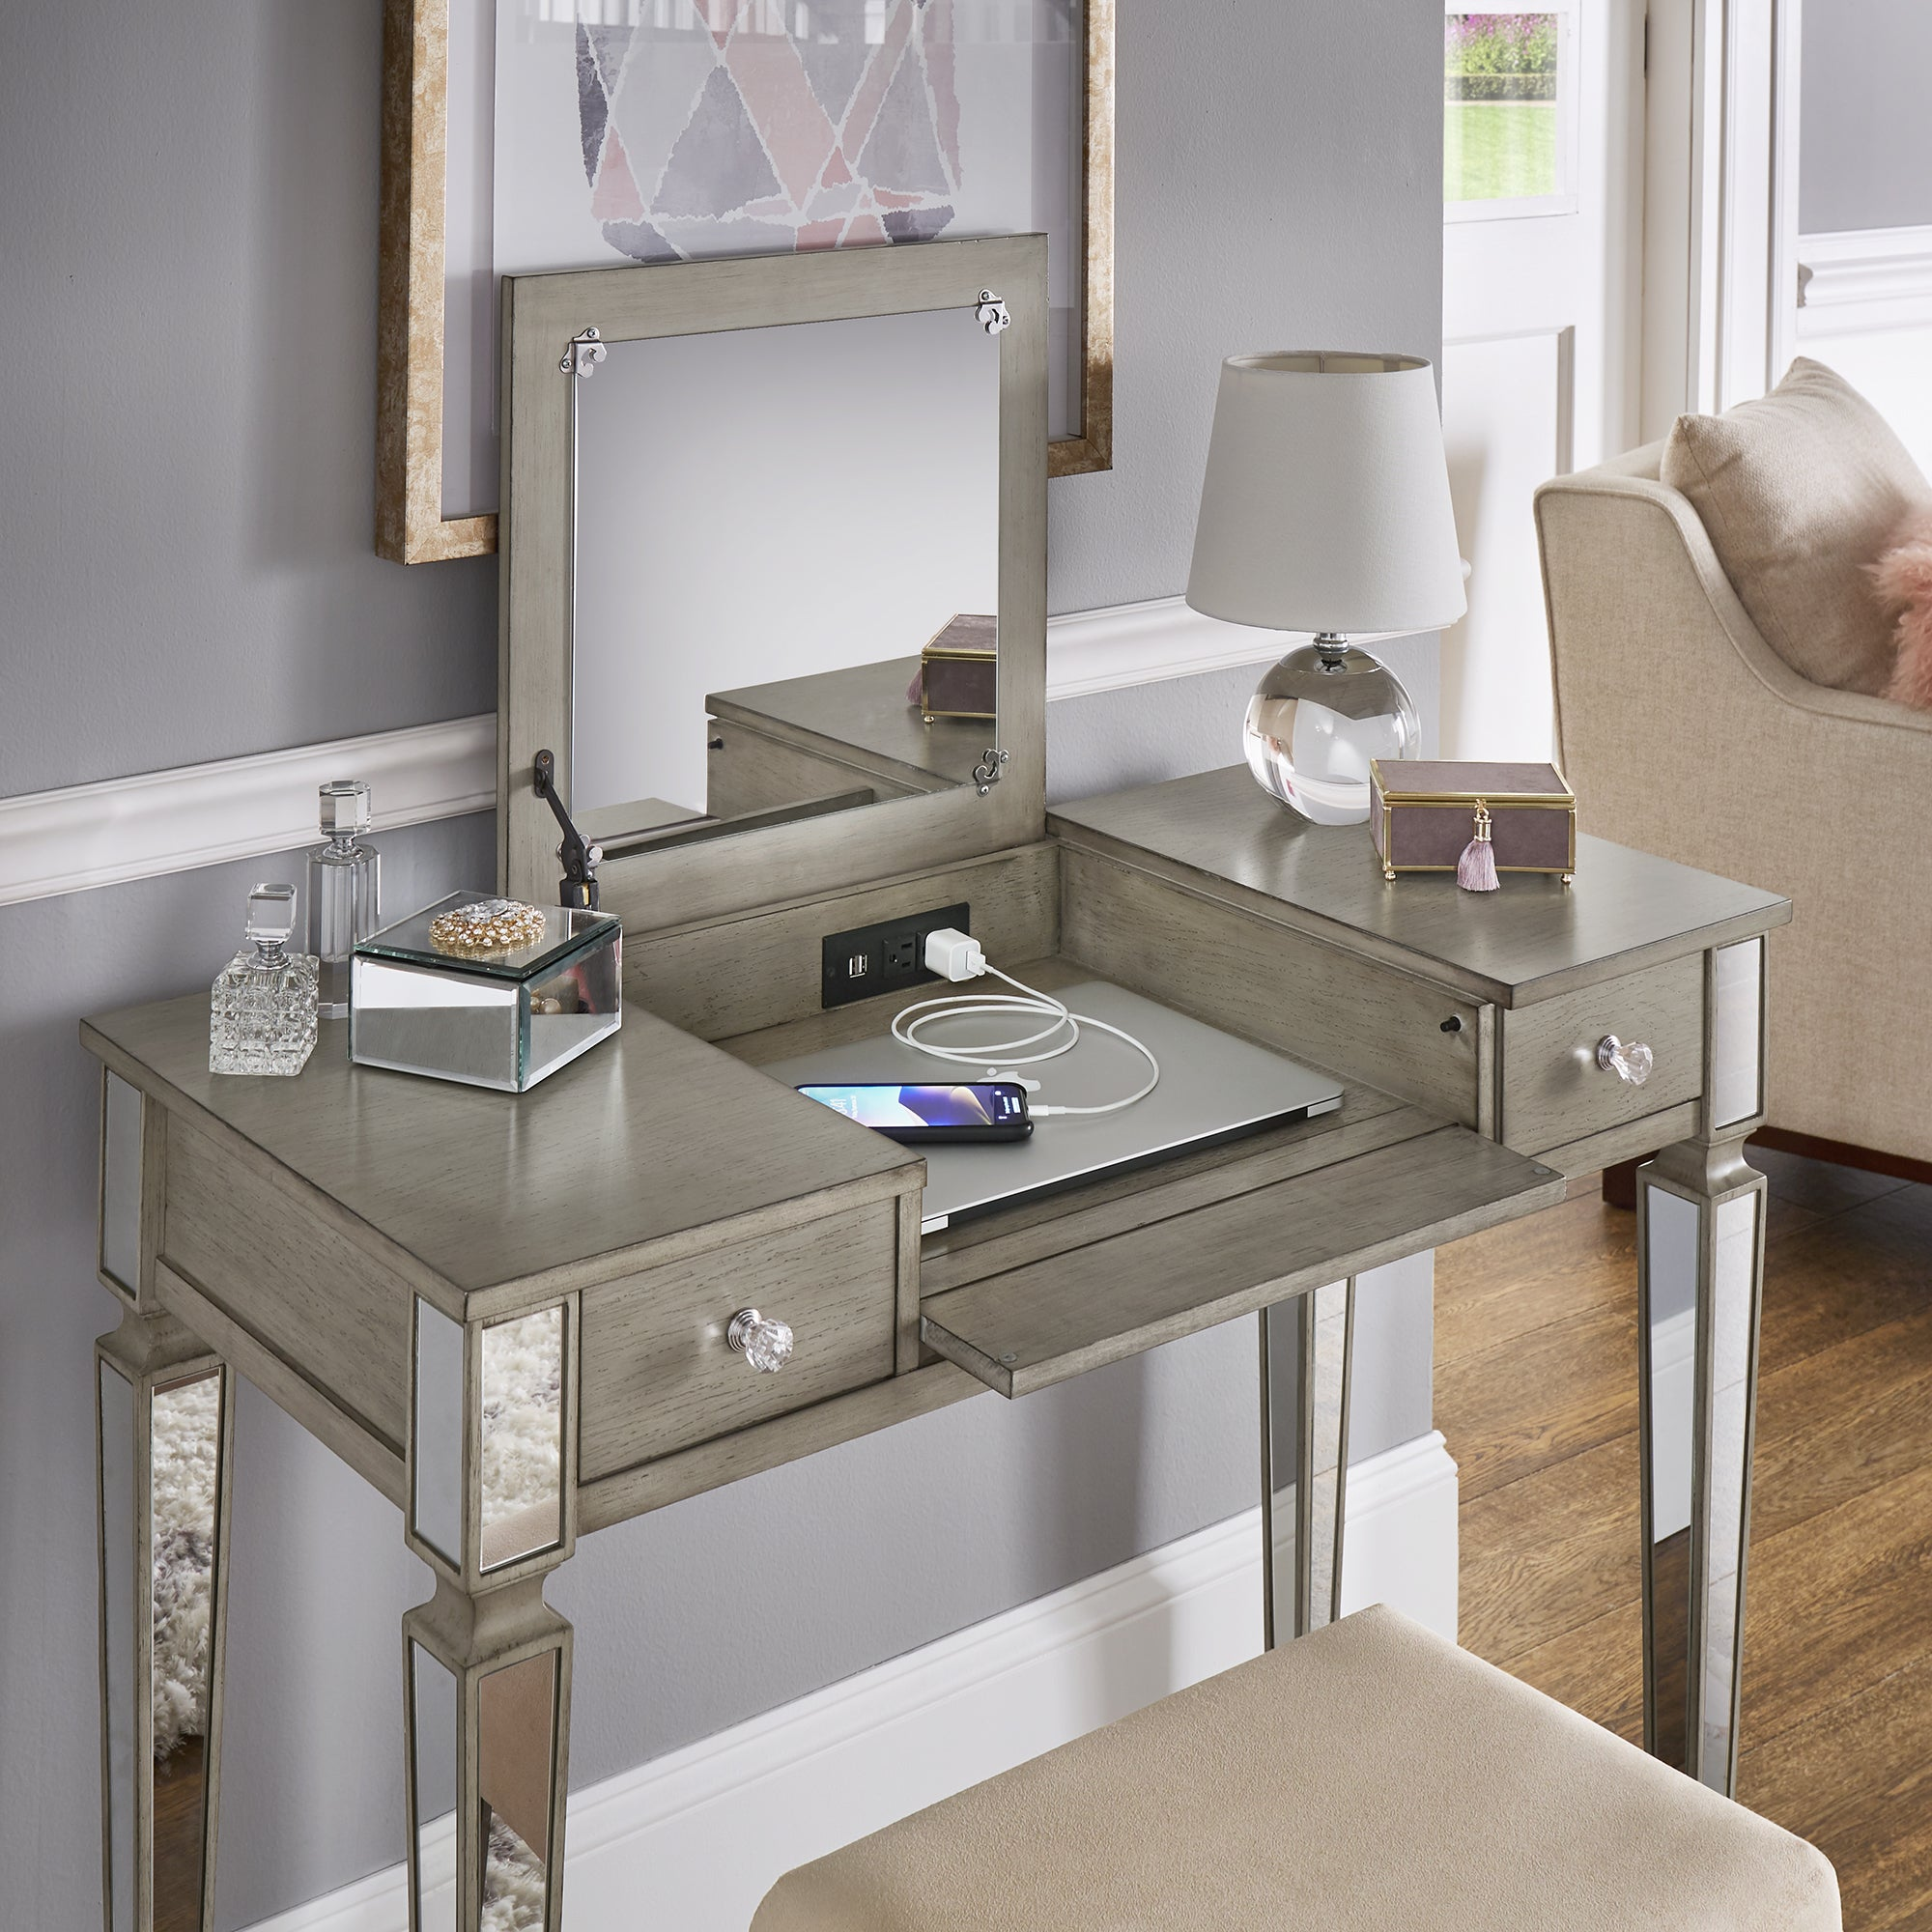 Silver Orchid Bedford Grey Mirrored Vanity Set With Flip Mirror And Power Strip Overstock 26298130